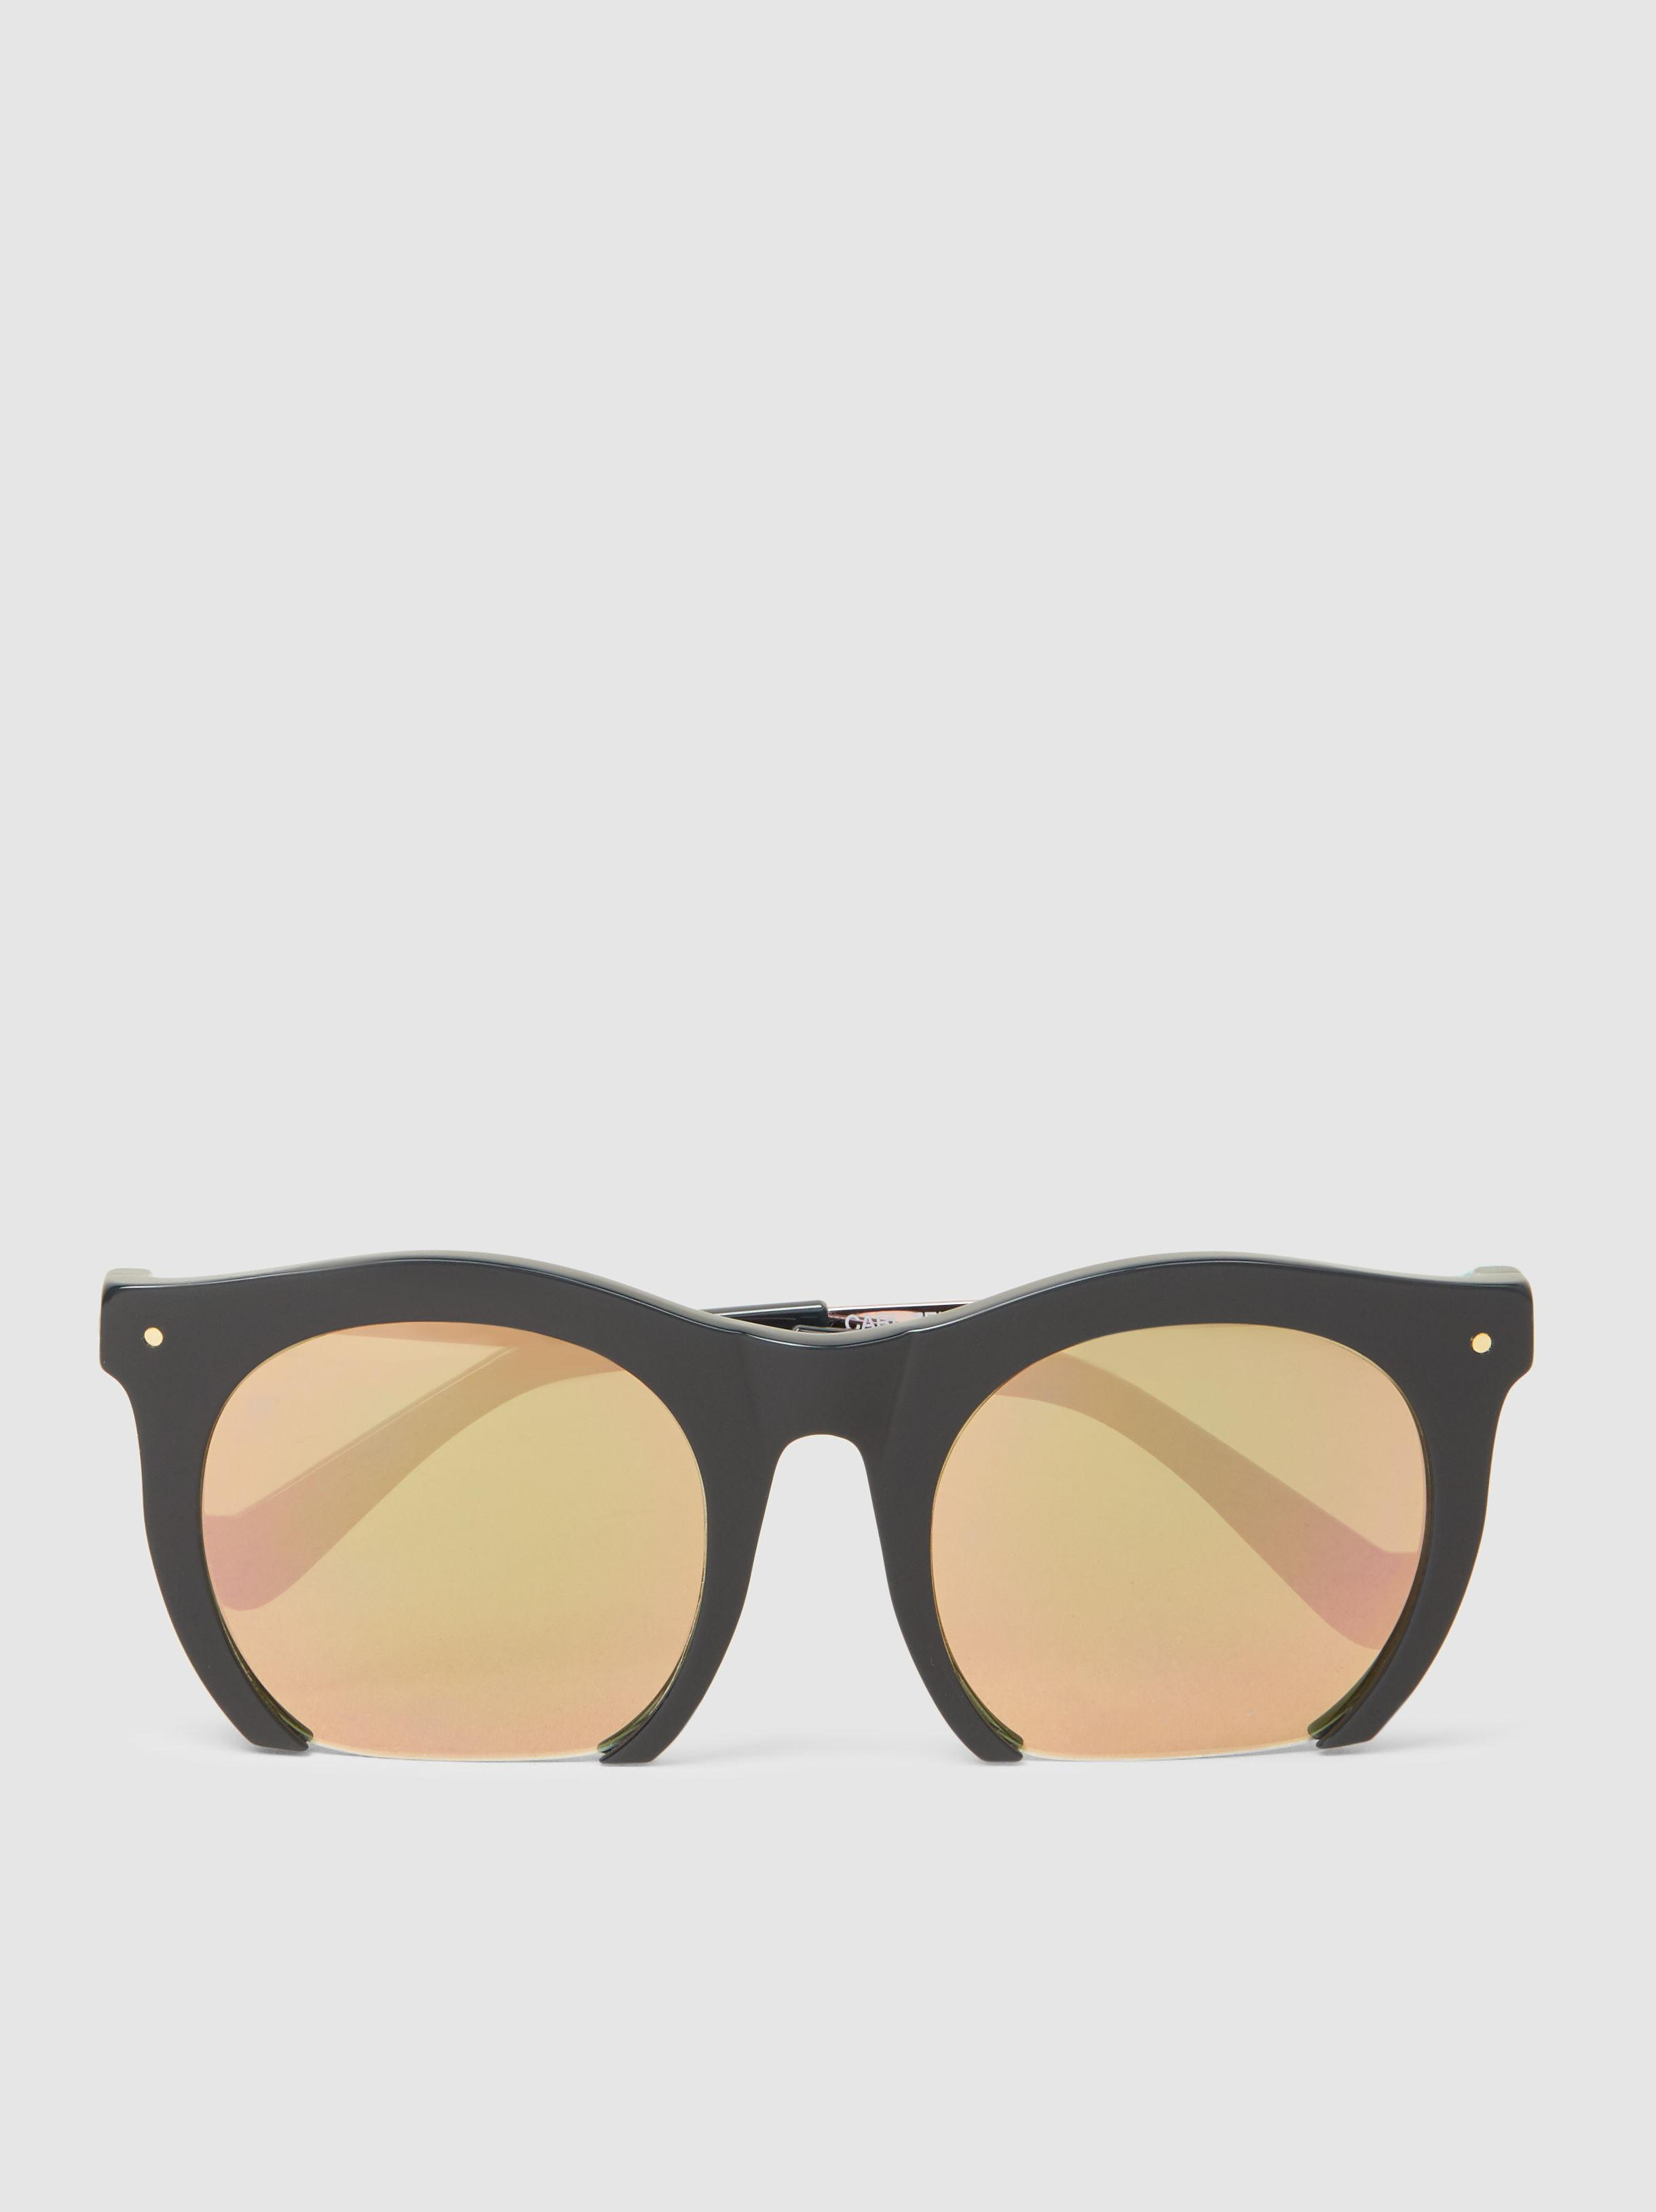 f6e0b2875a Lyst - Grey Ant The Foundry Rose Gold Sunglasses in Metallic